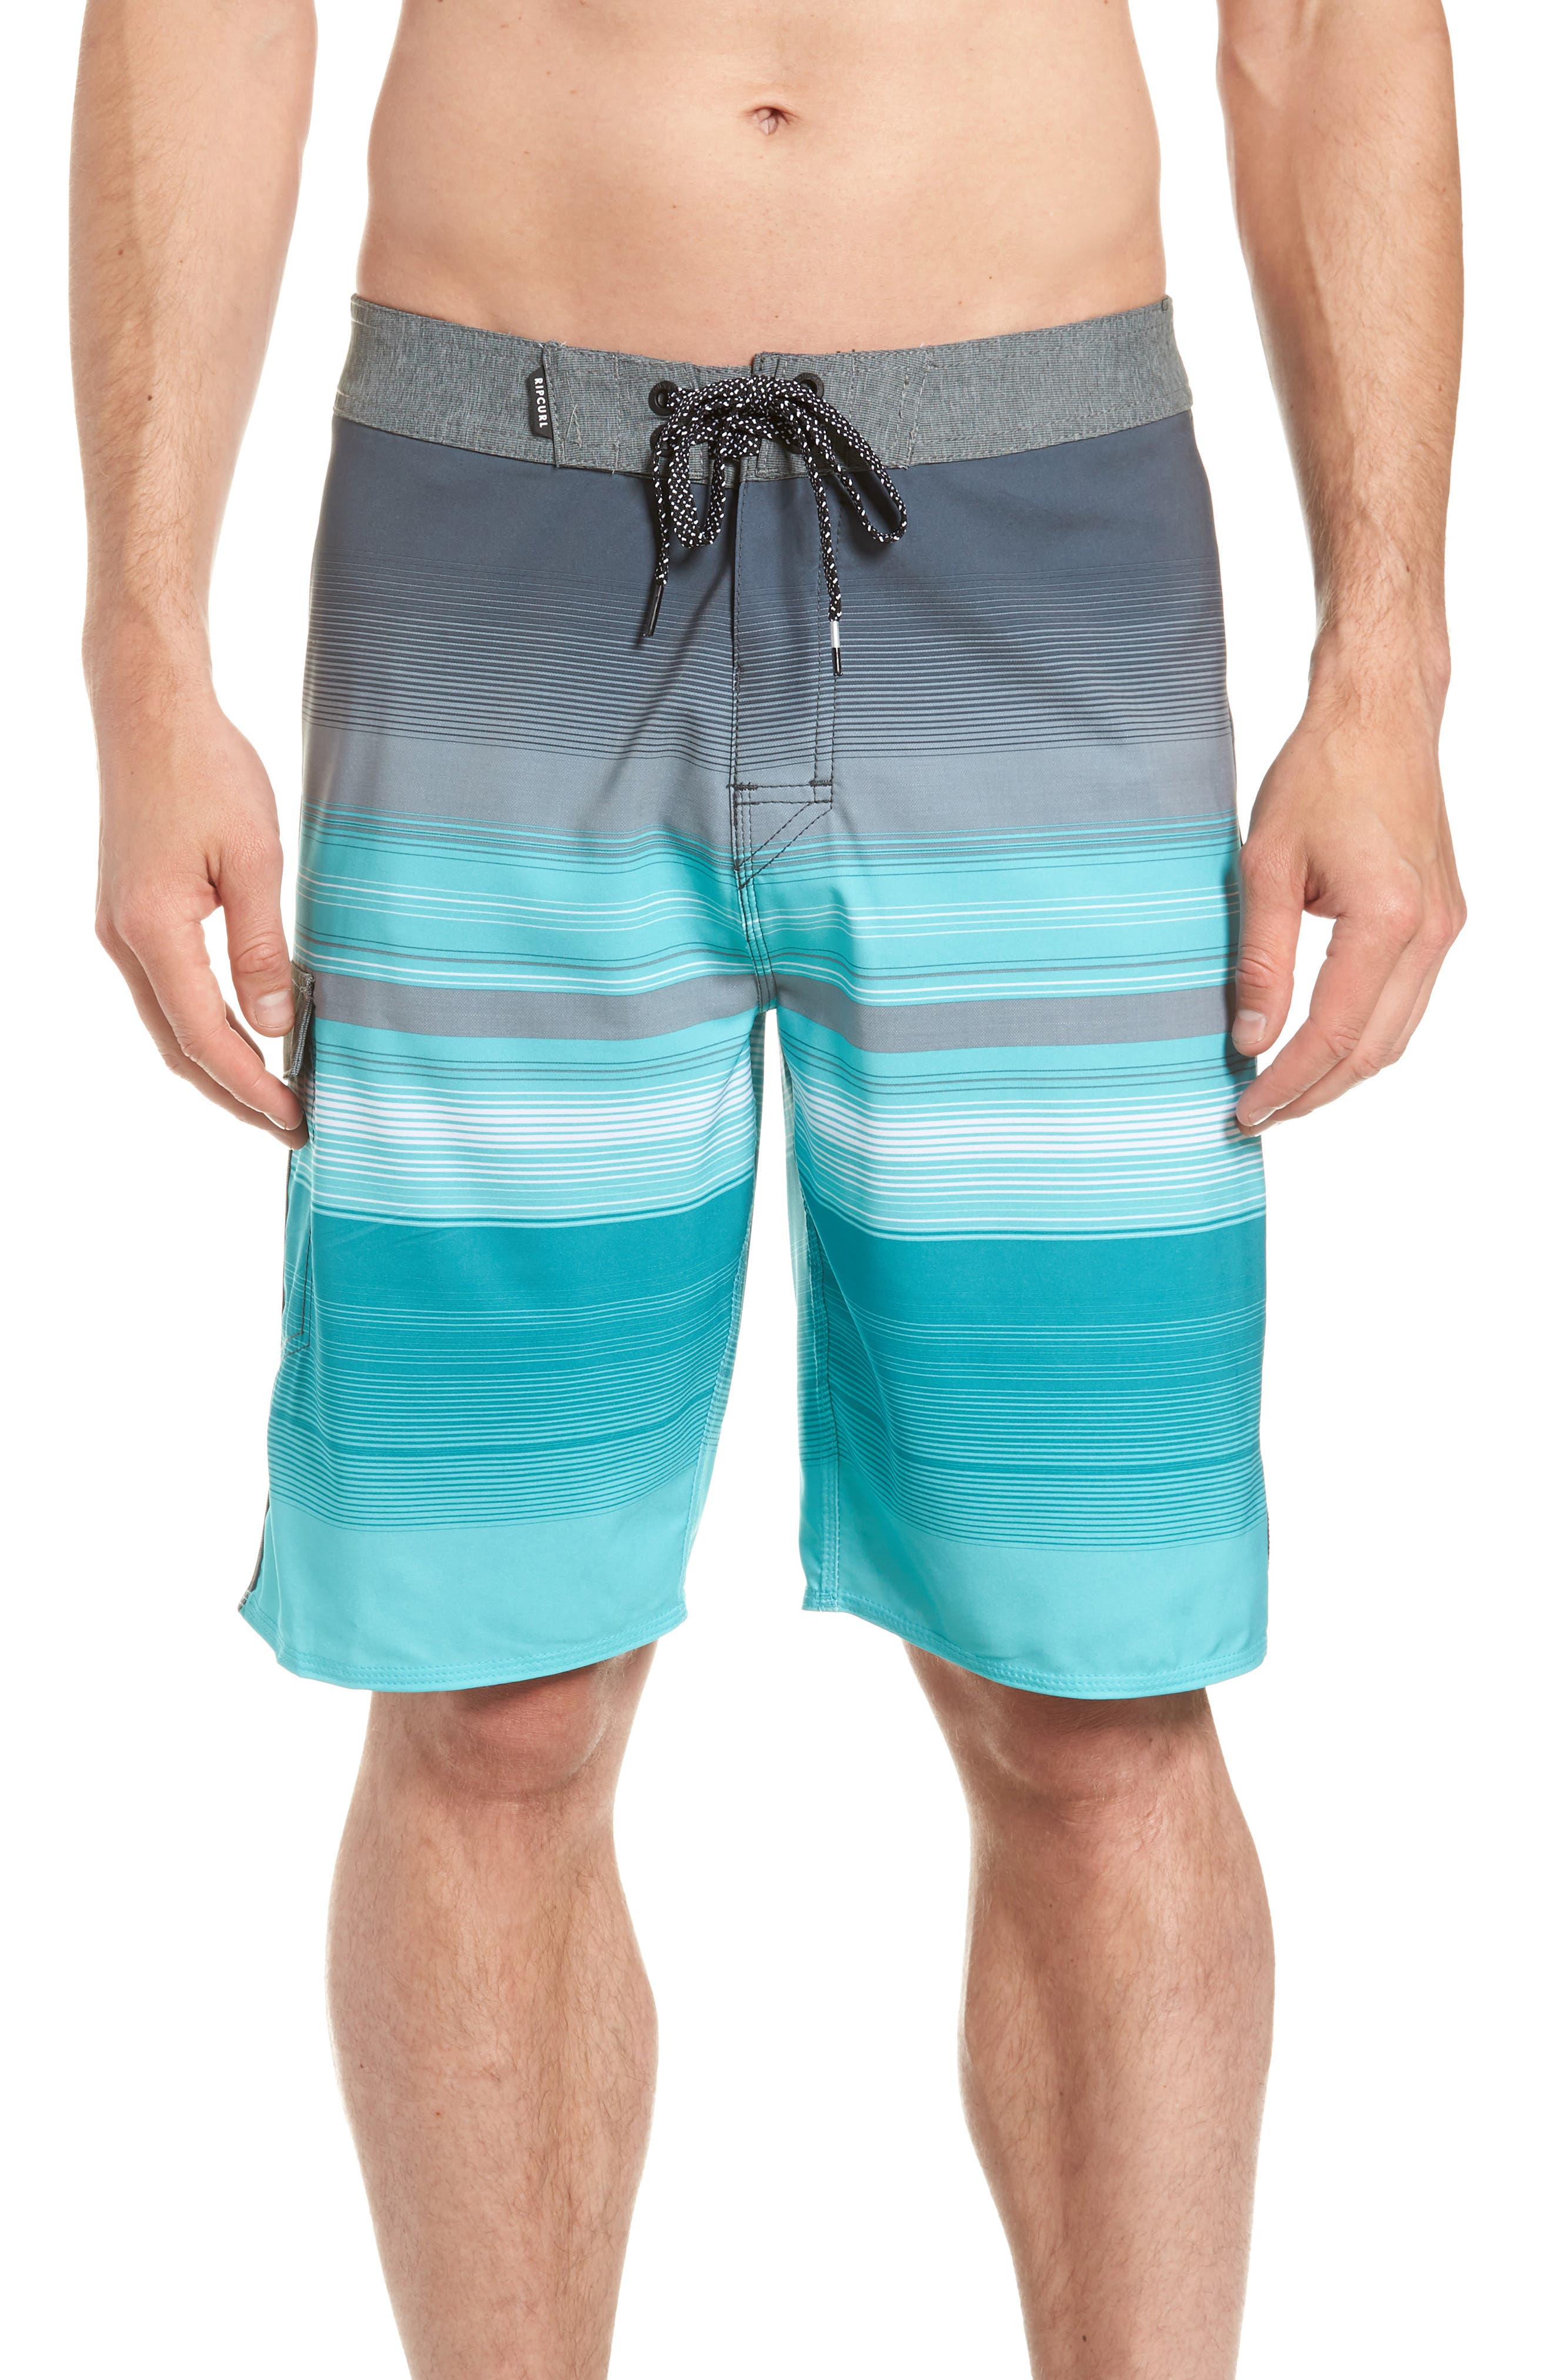 Mirage Accelerate Board Shorts,                         Main,                         color, Teal